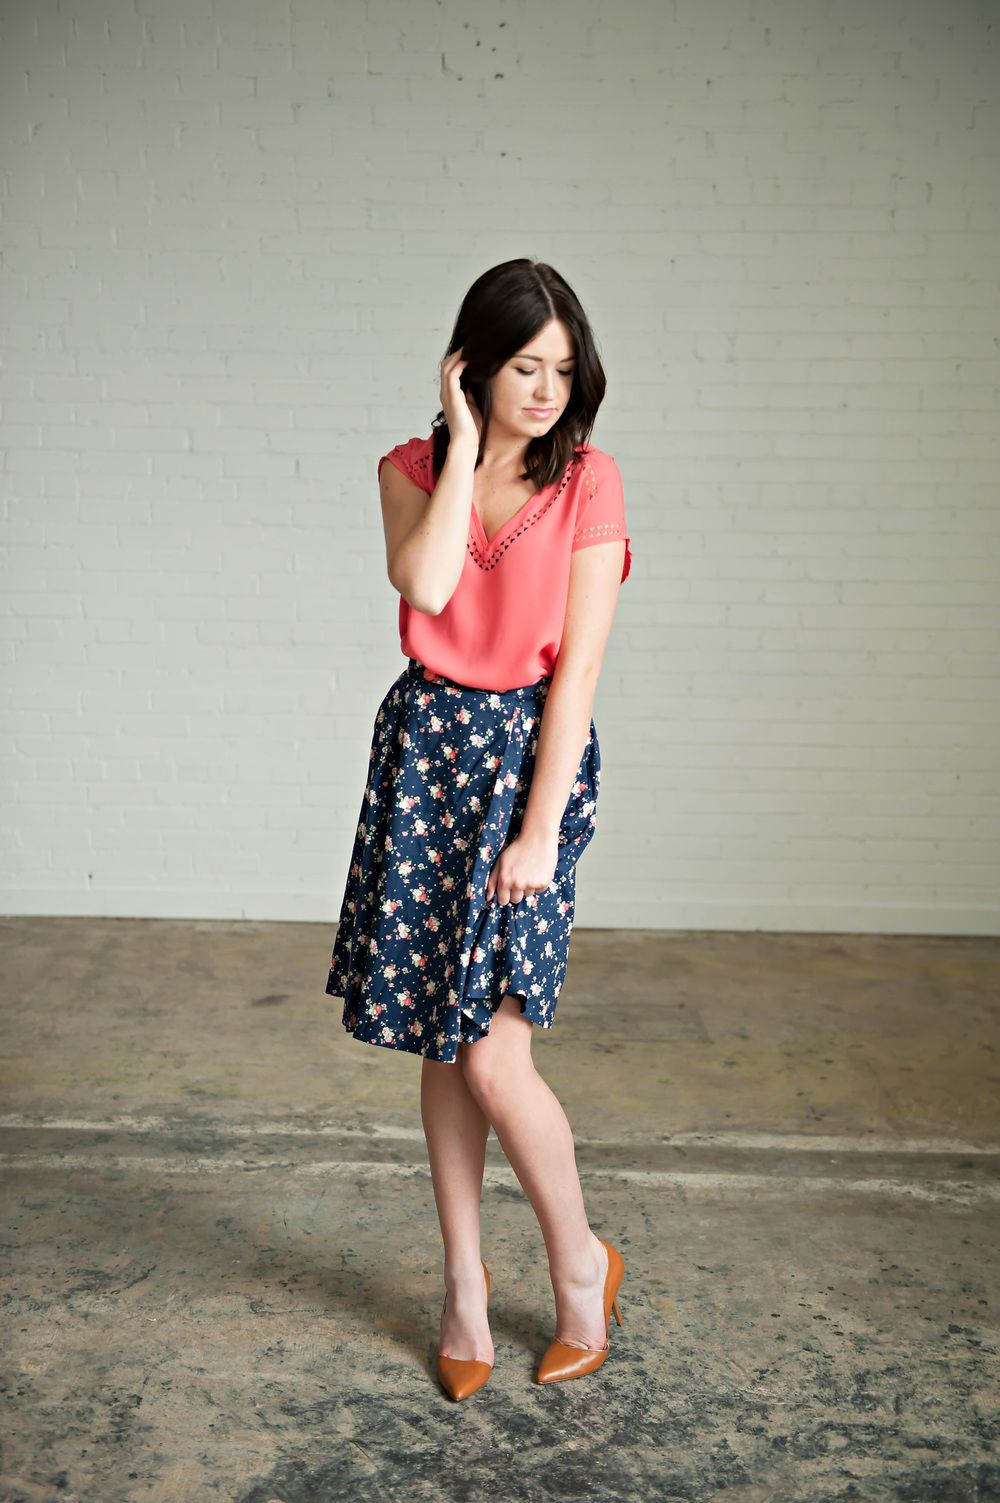 c5de7a70 Piper & Scoot || Coral Laser Cut Blouse && Navy Floral Skirt ...